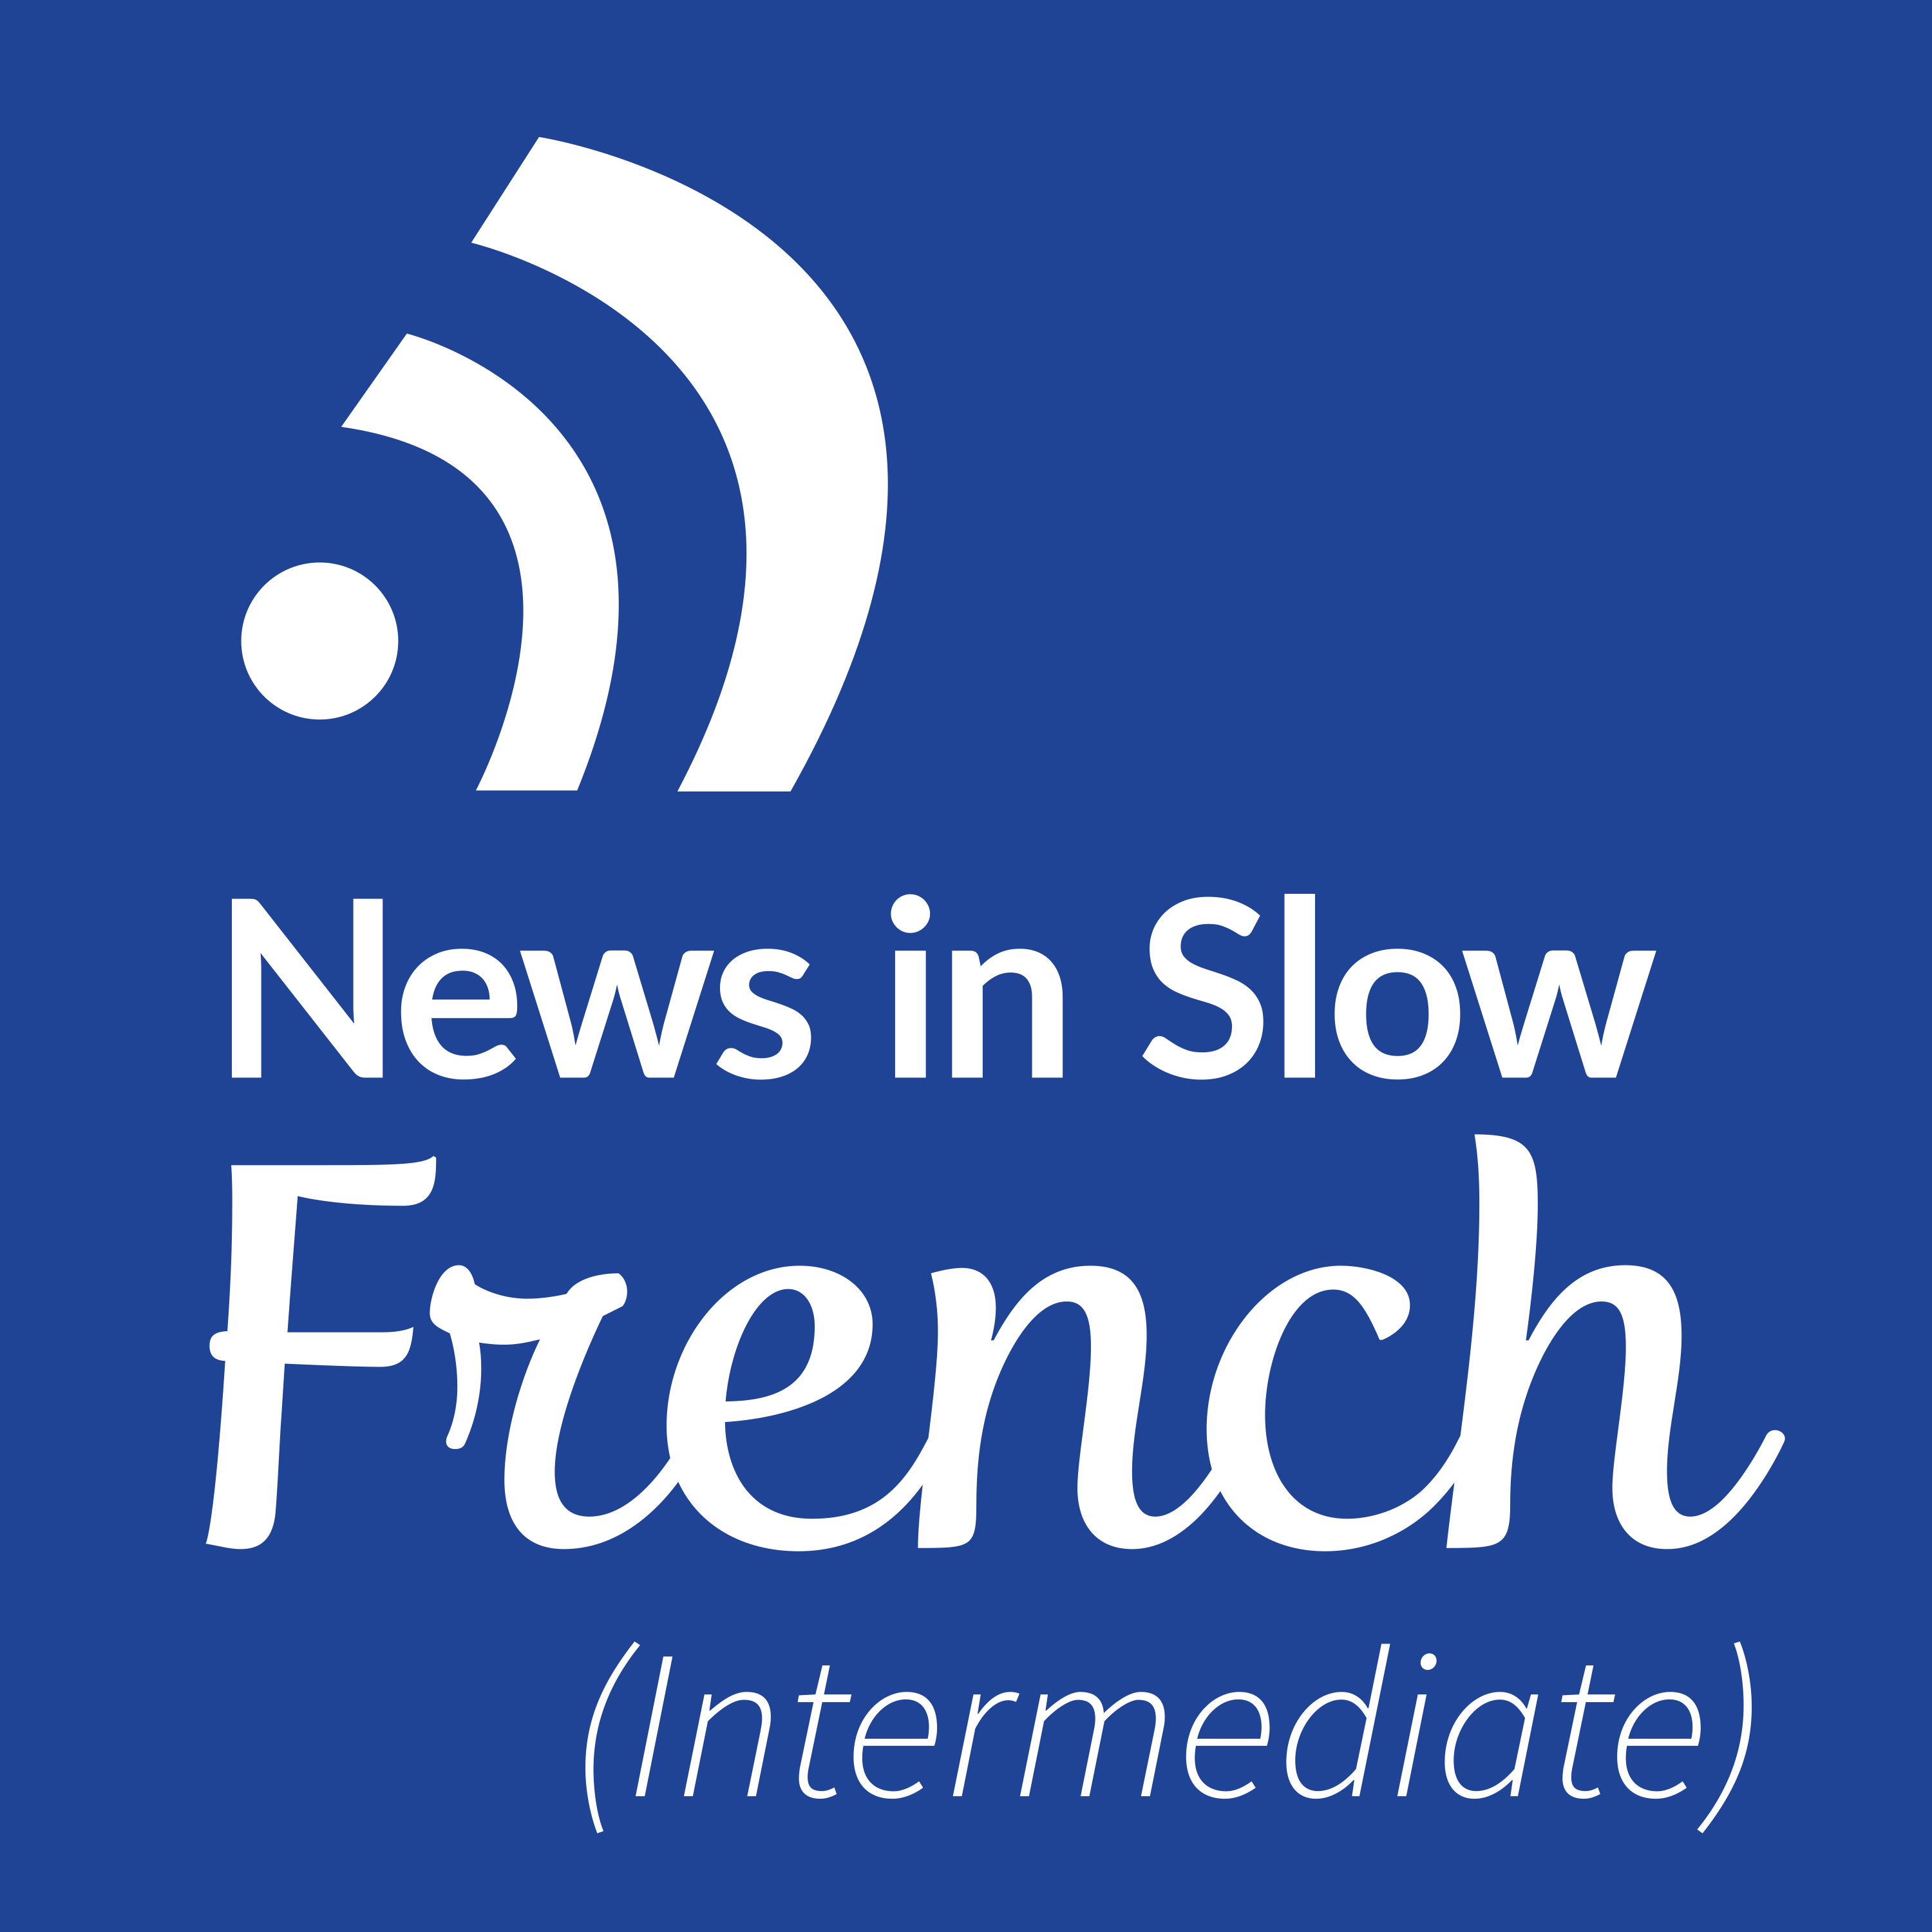 News in Slow French #263 - Learn French through current events